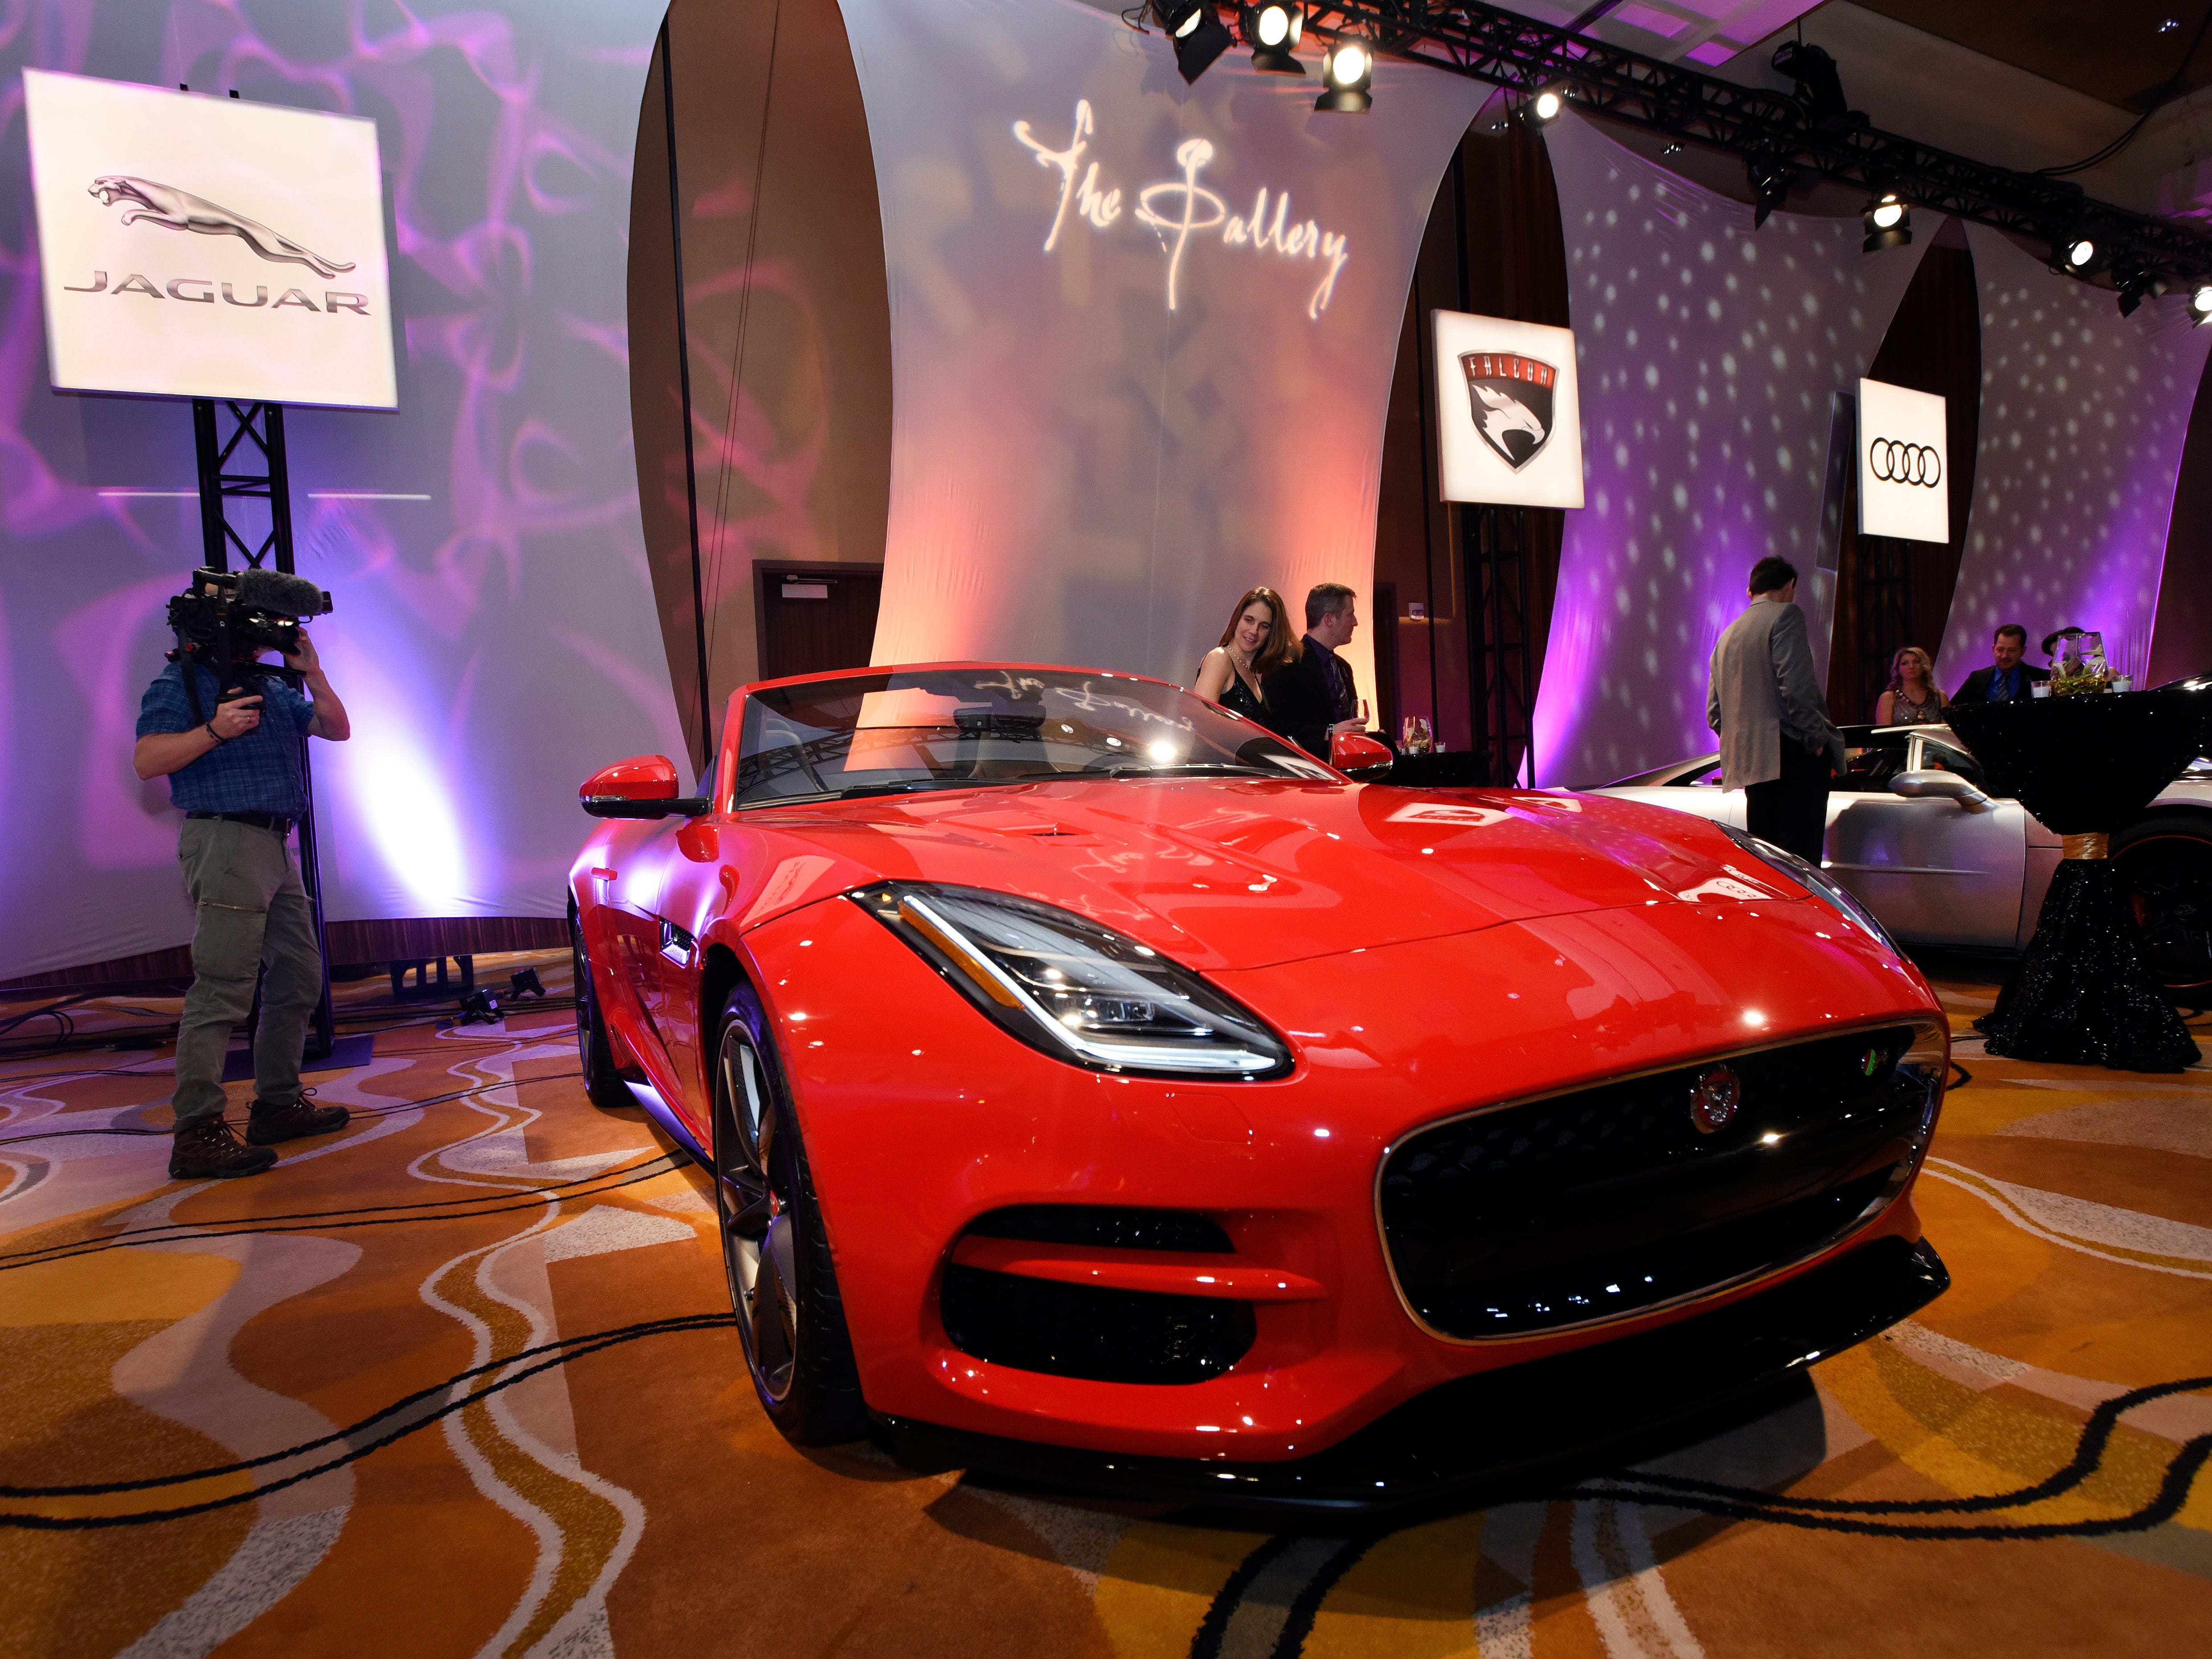 Attendees look over the Jaguar F-type R coupe at The Gallery, held at the MGM Grand Detroit, Saturday night.